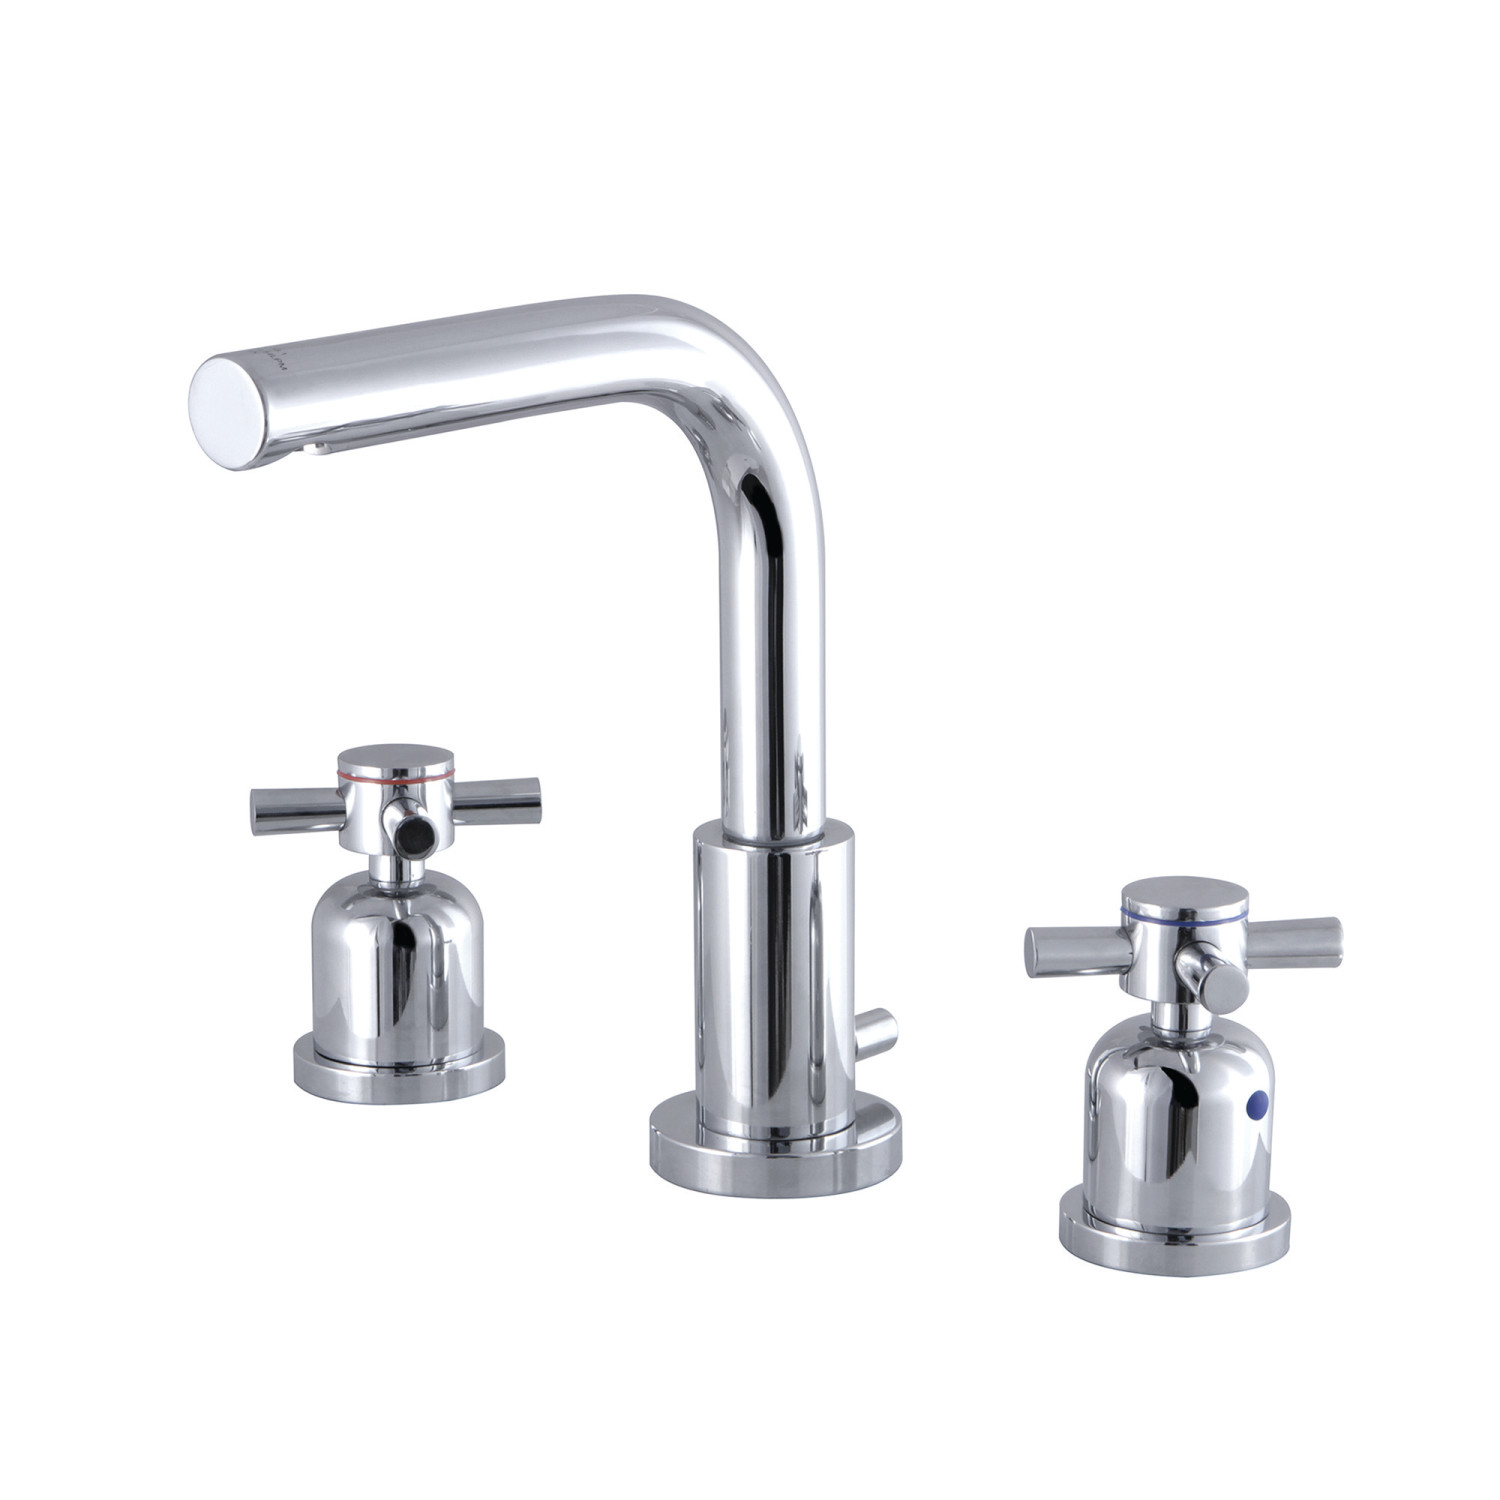 Modern Two-Handle 3-Hole Deck Mounted Widespread Bathroom Faucet with Brass Pop-Up in Polished Chrome with 6 Finish Options